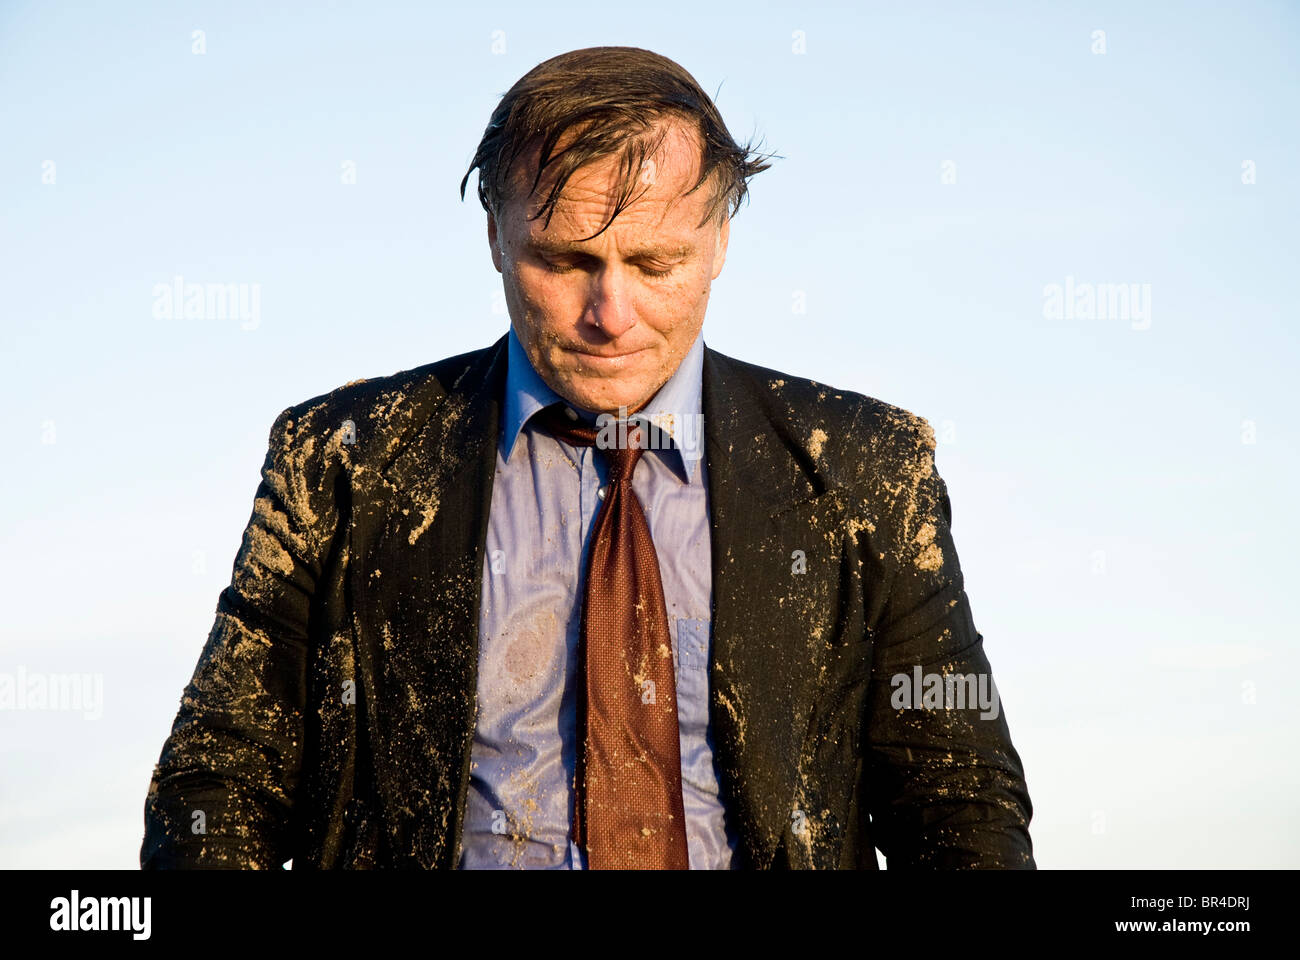 A depressed businessman is soaking wet - Stock Image